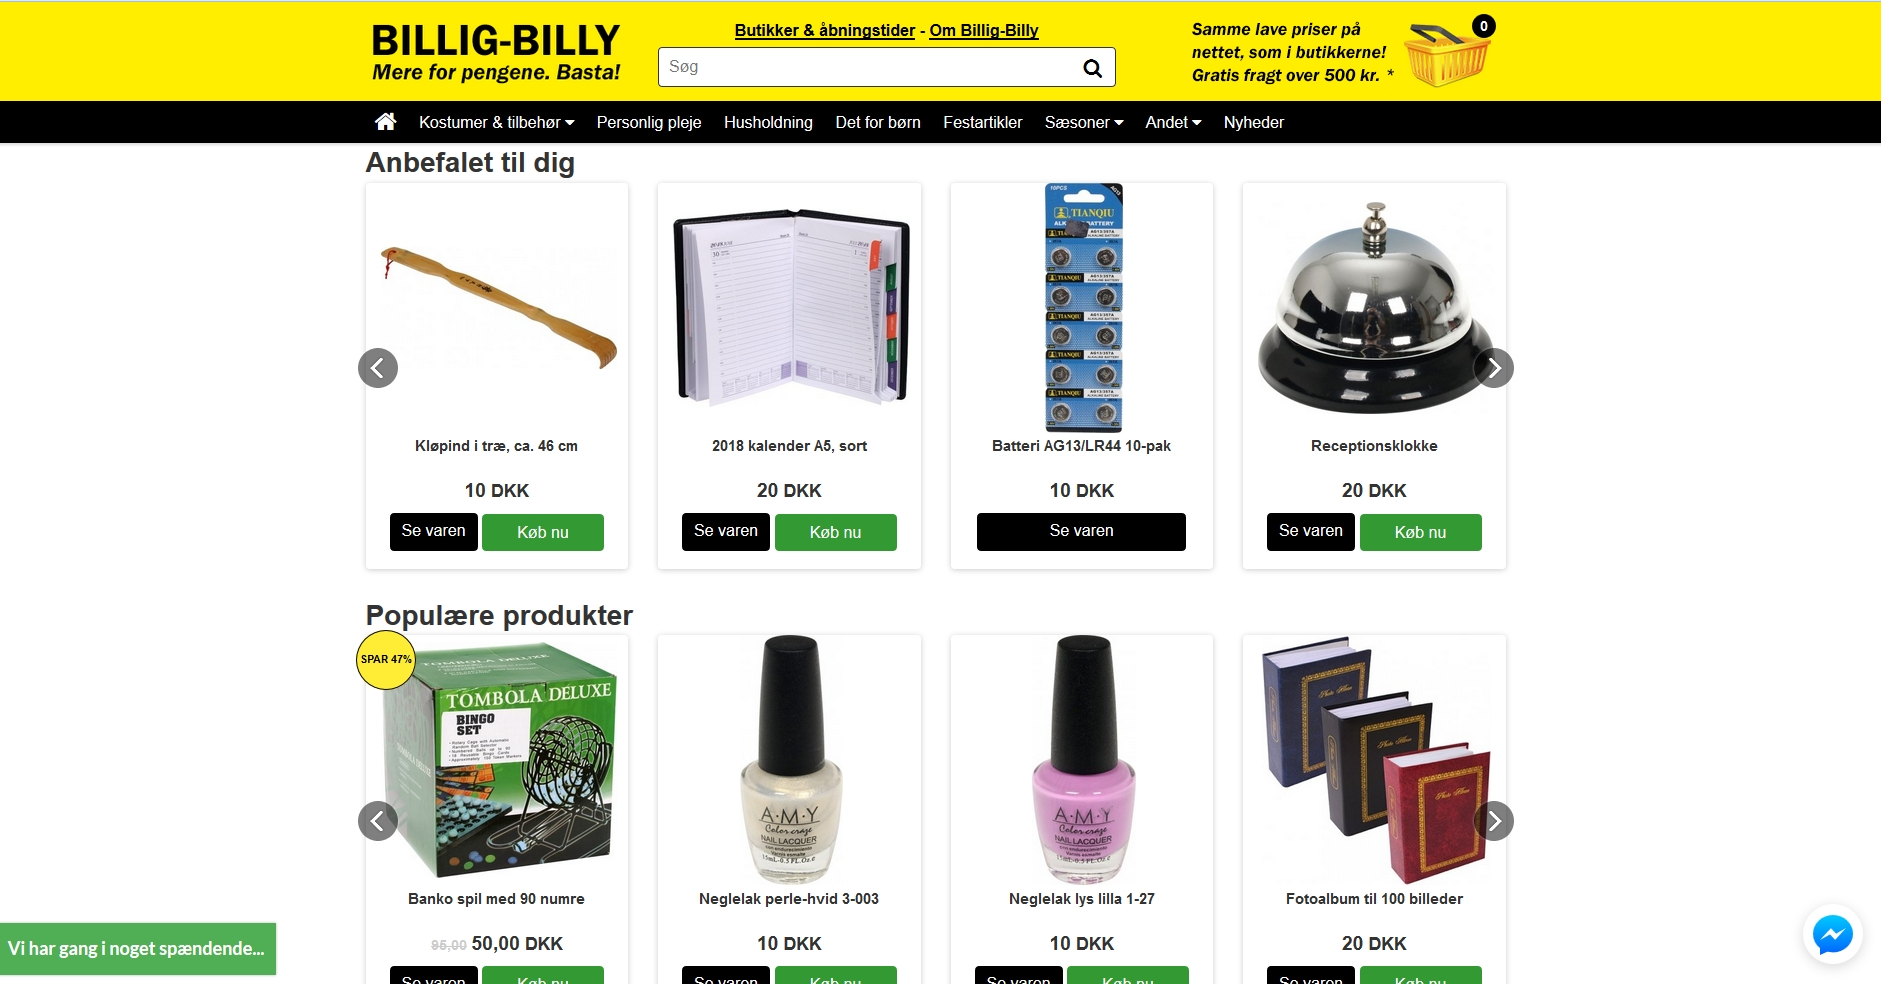 Detaljer : Billig-Billy. Kostumer og 10 krs marked